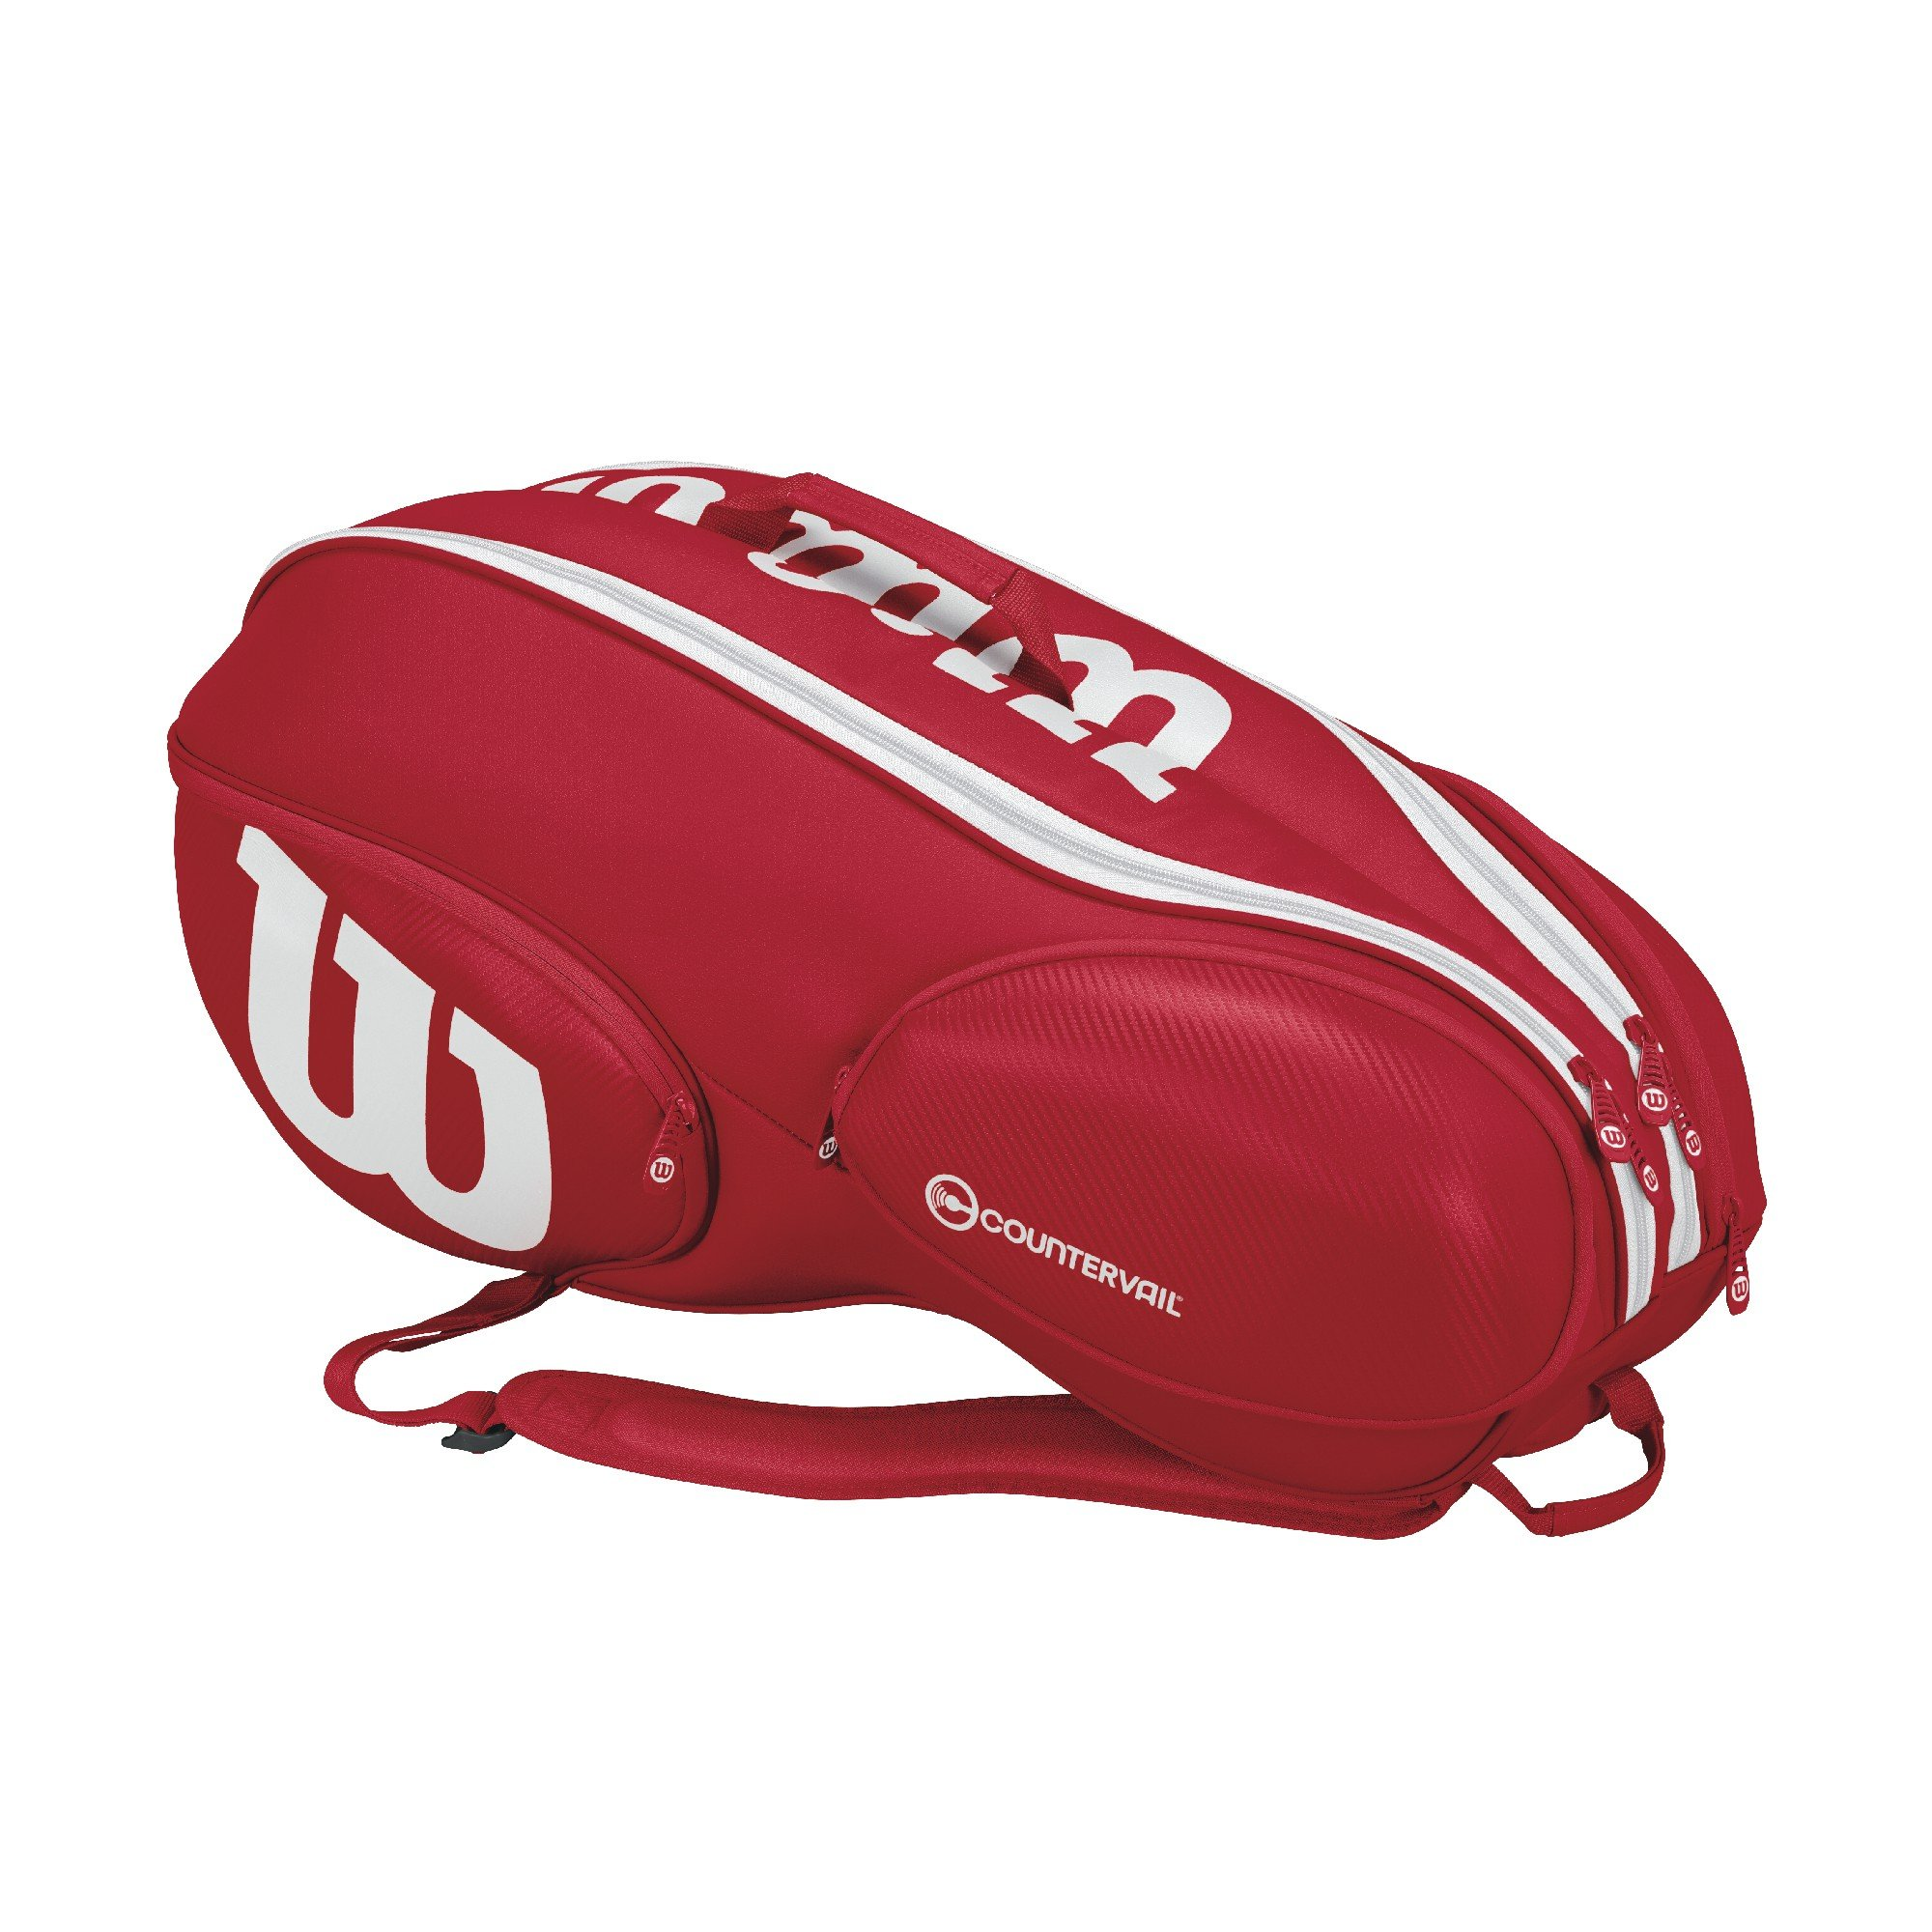 Wilson Pro Staff Tennis Bag - Red /White,9 Pack by Wilson (Image #2)